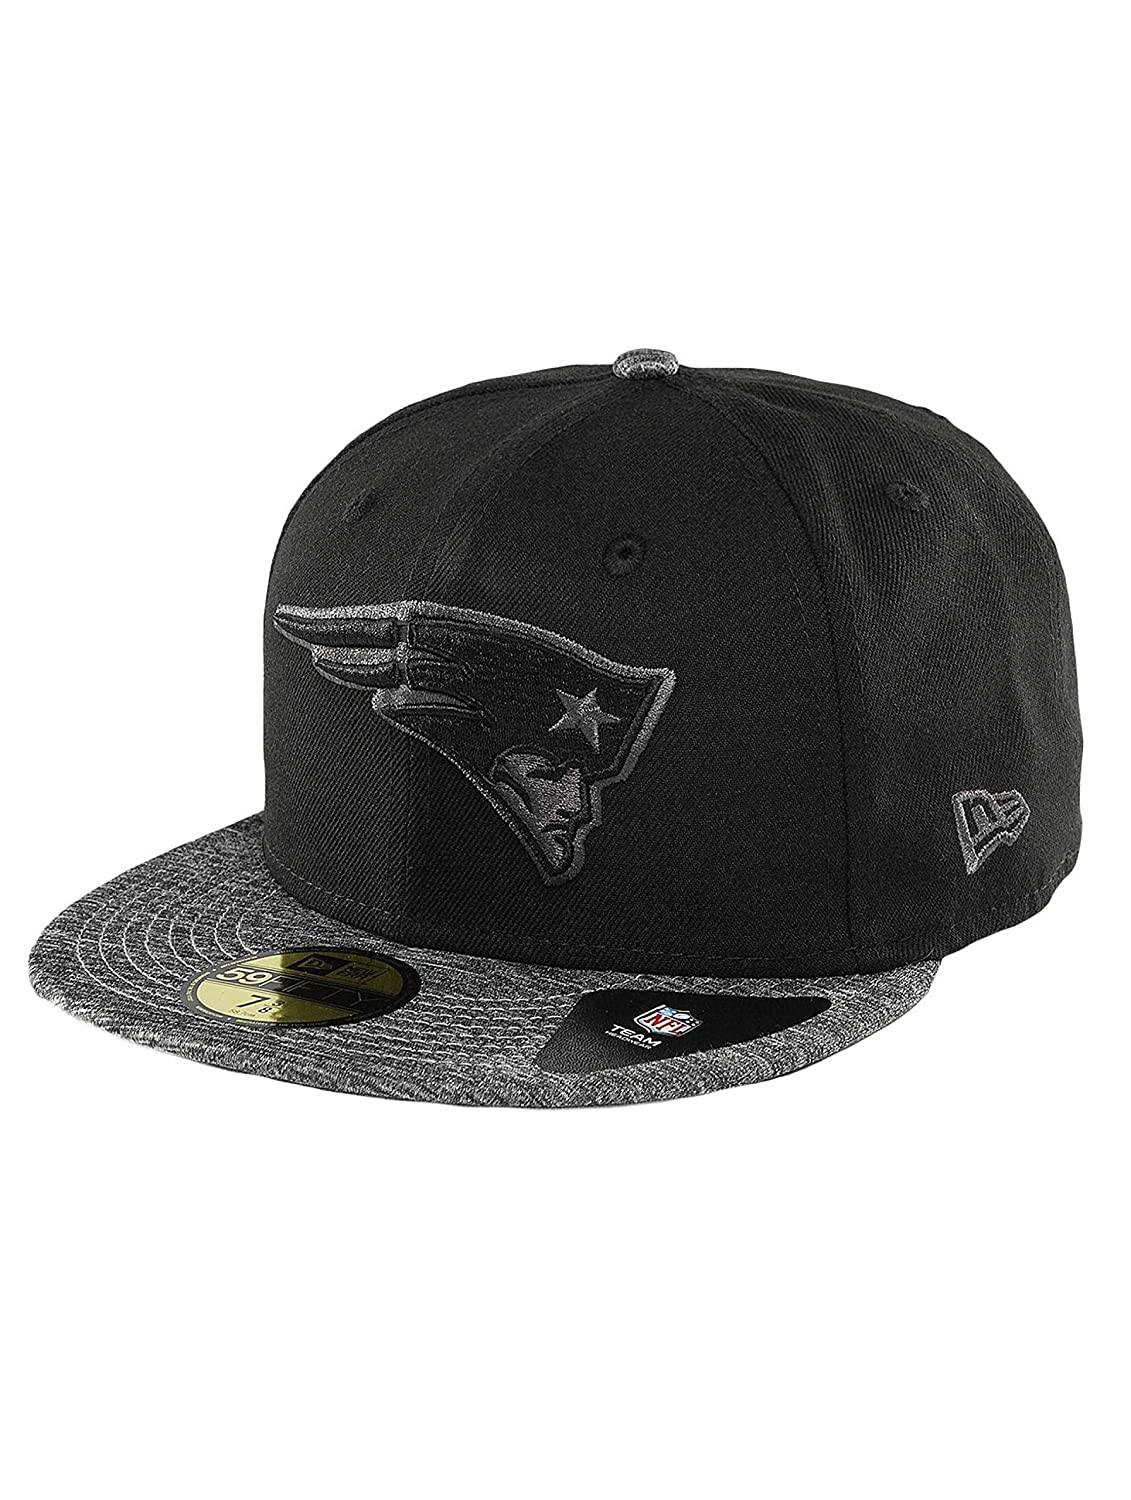 New Era Men Caps Fitted Cap Grey Collection New England Patriots 59Fifty   Amazon.co.uk  Clothing 49a6761e79ca